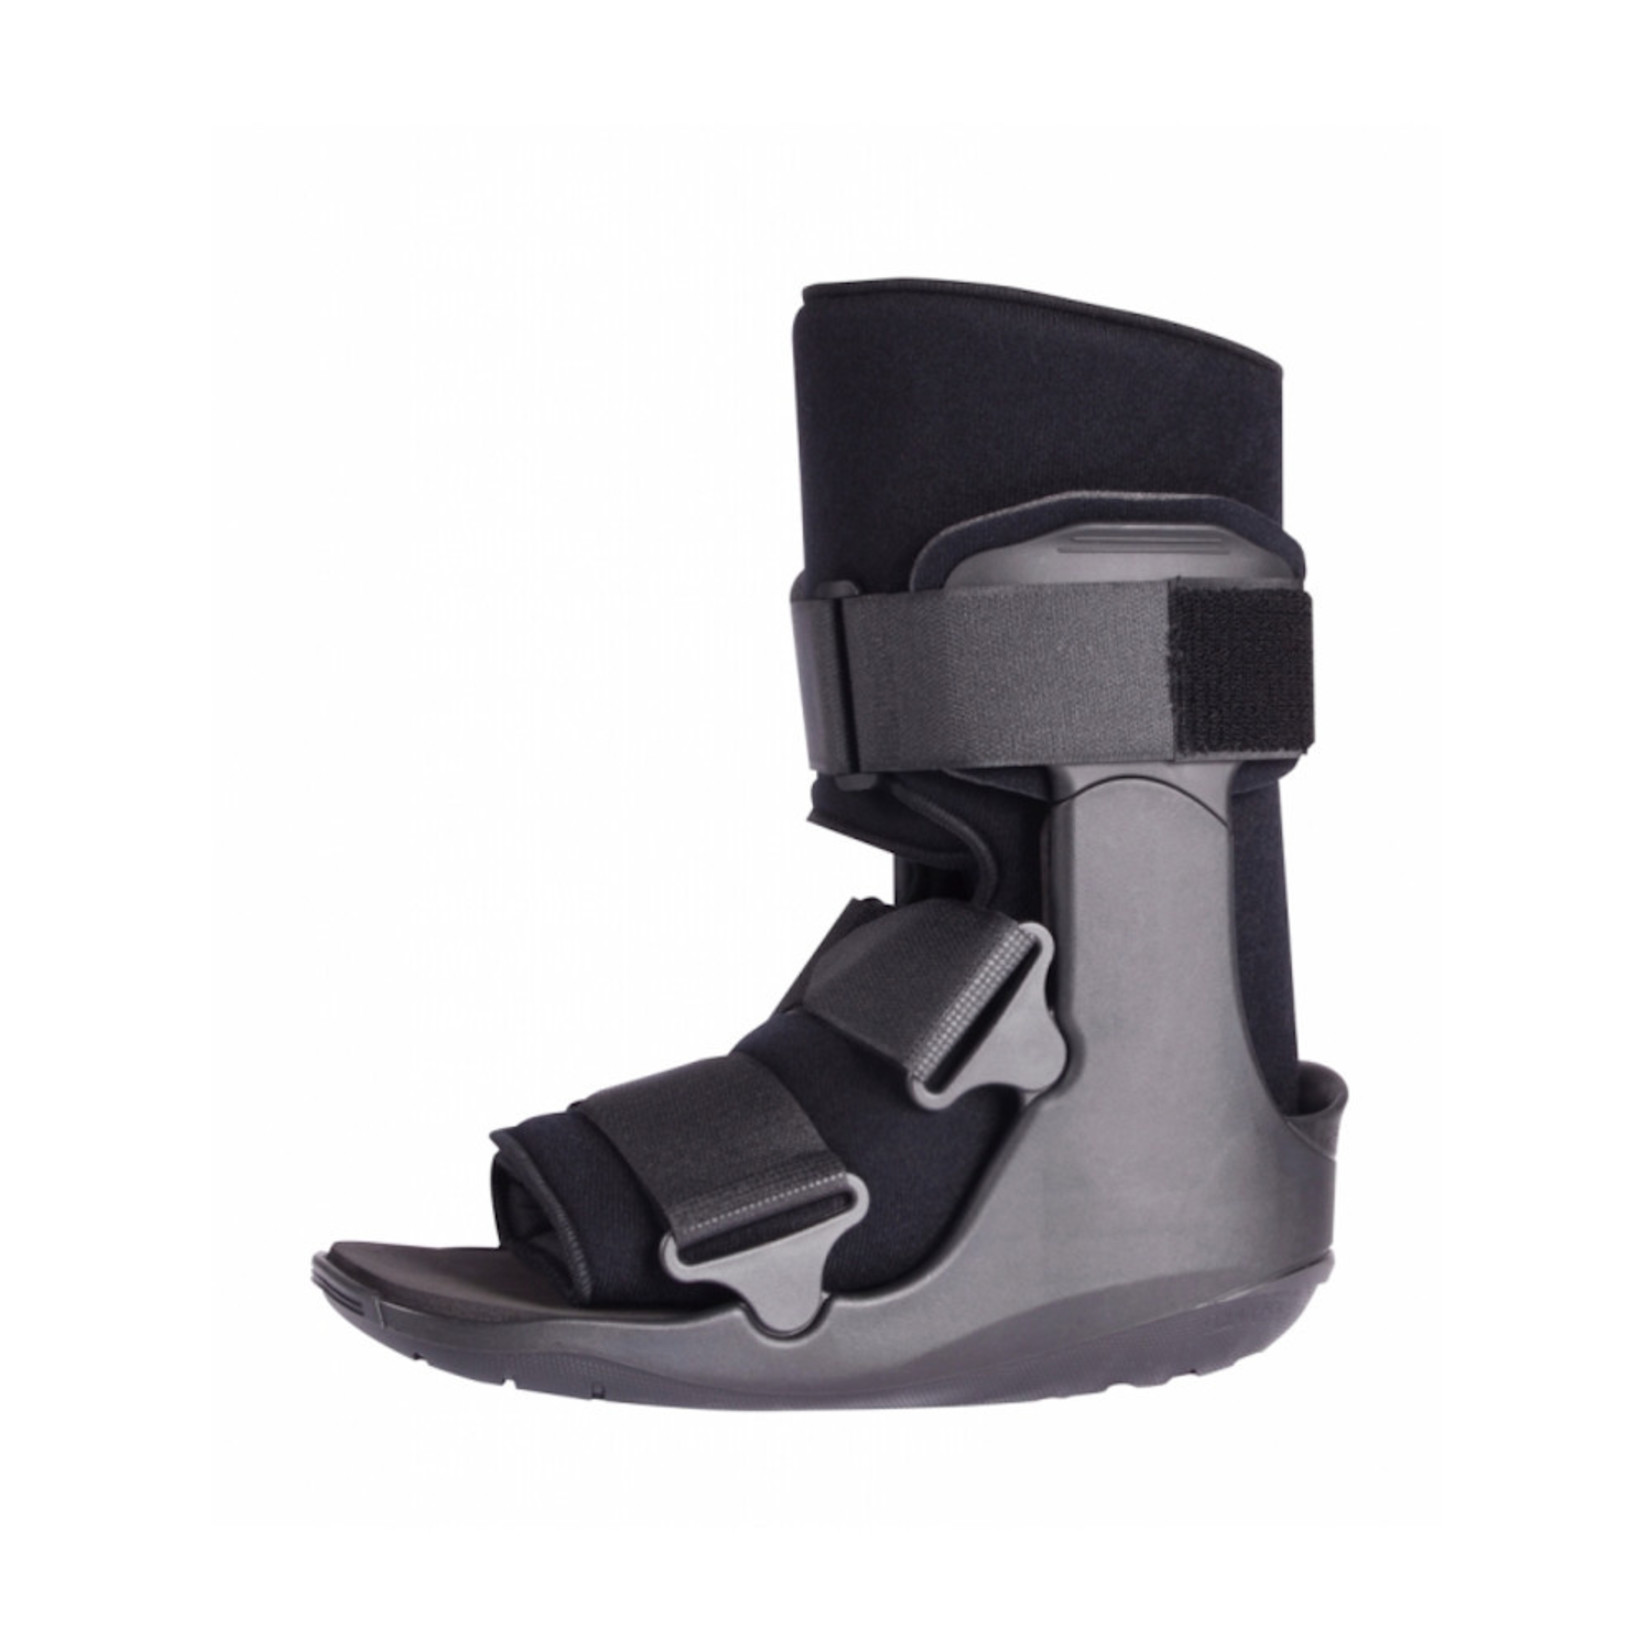 DON JOY / Aircast CAM Walker Boot Low Small